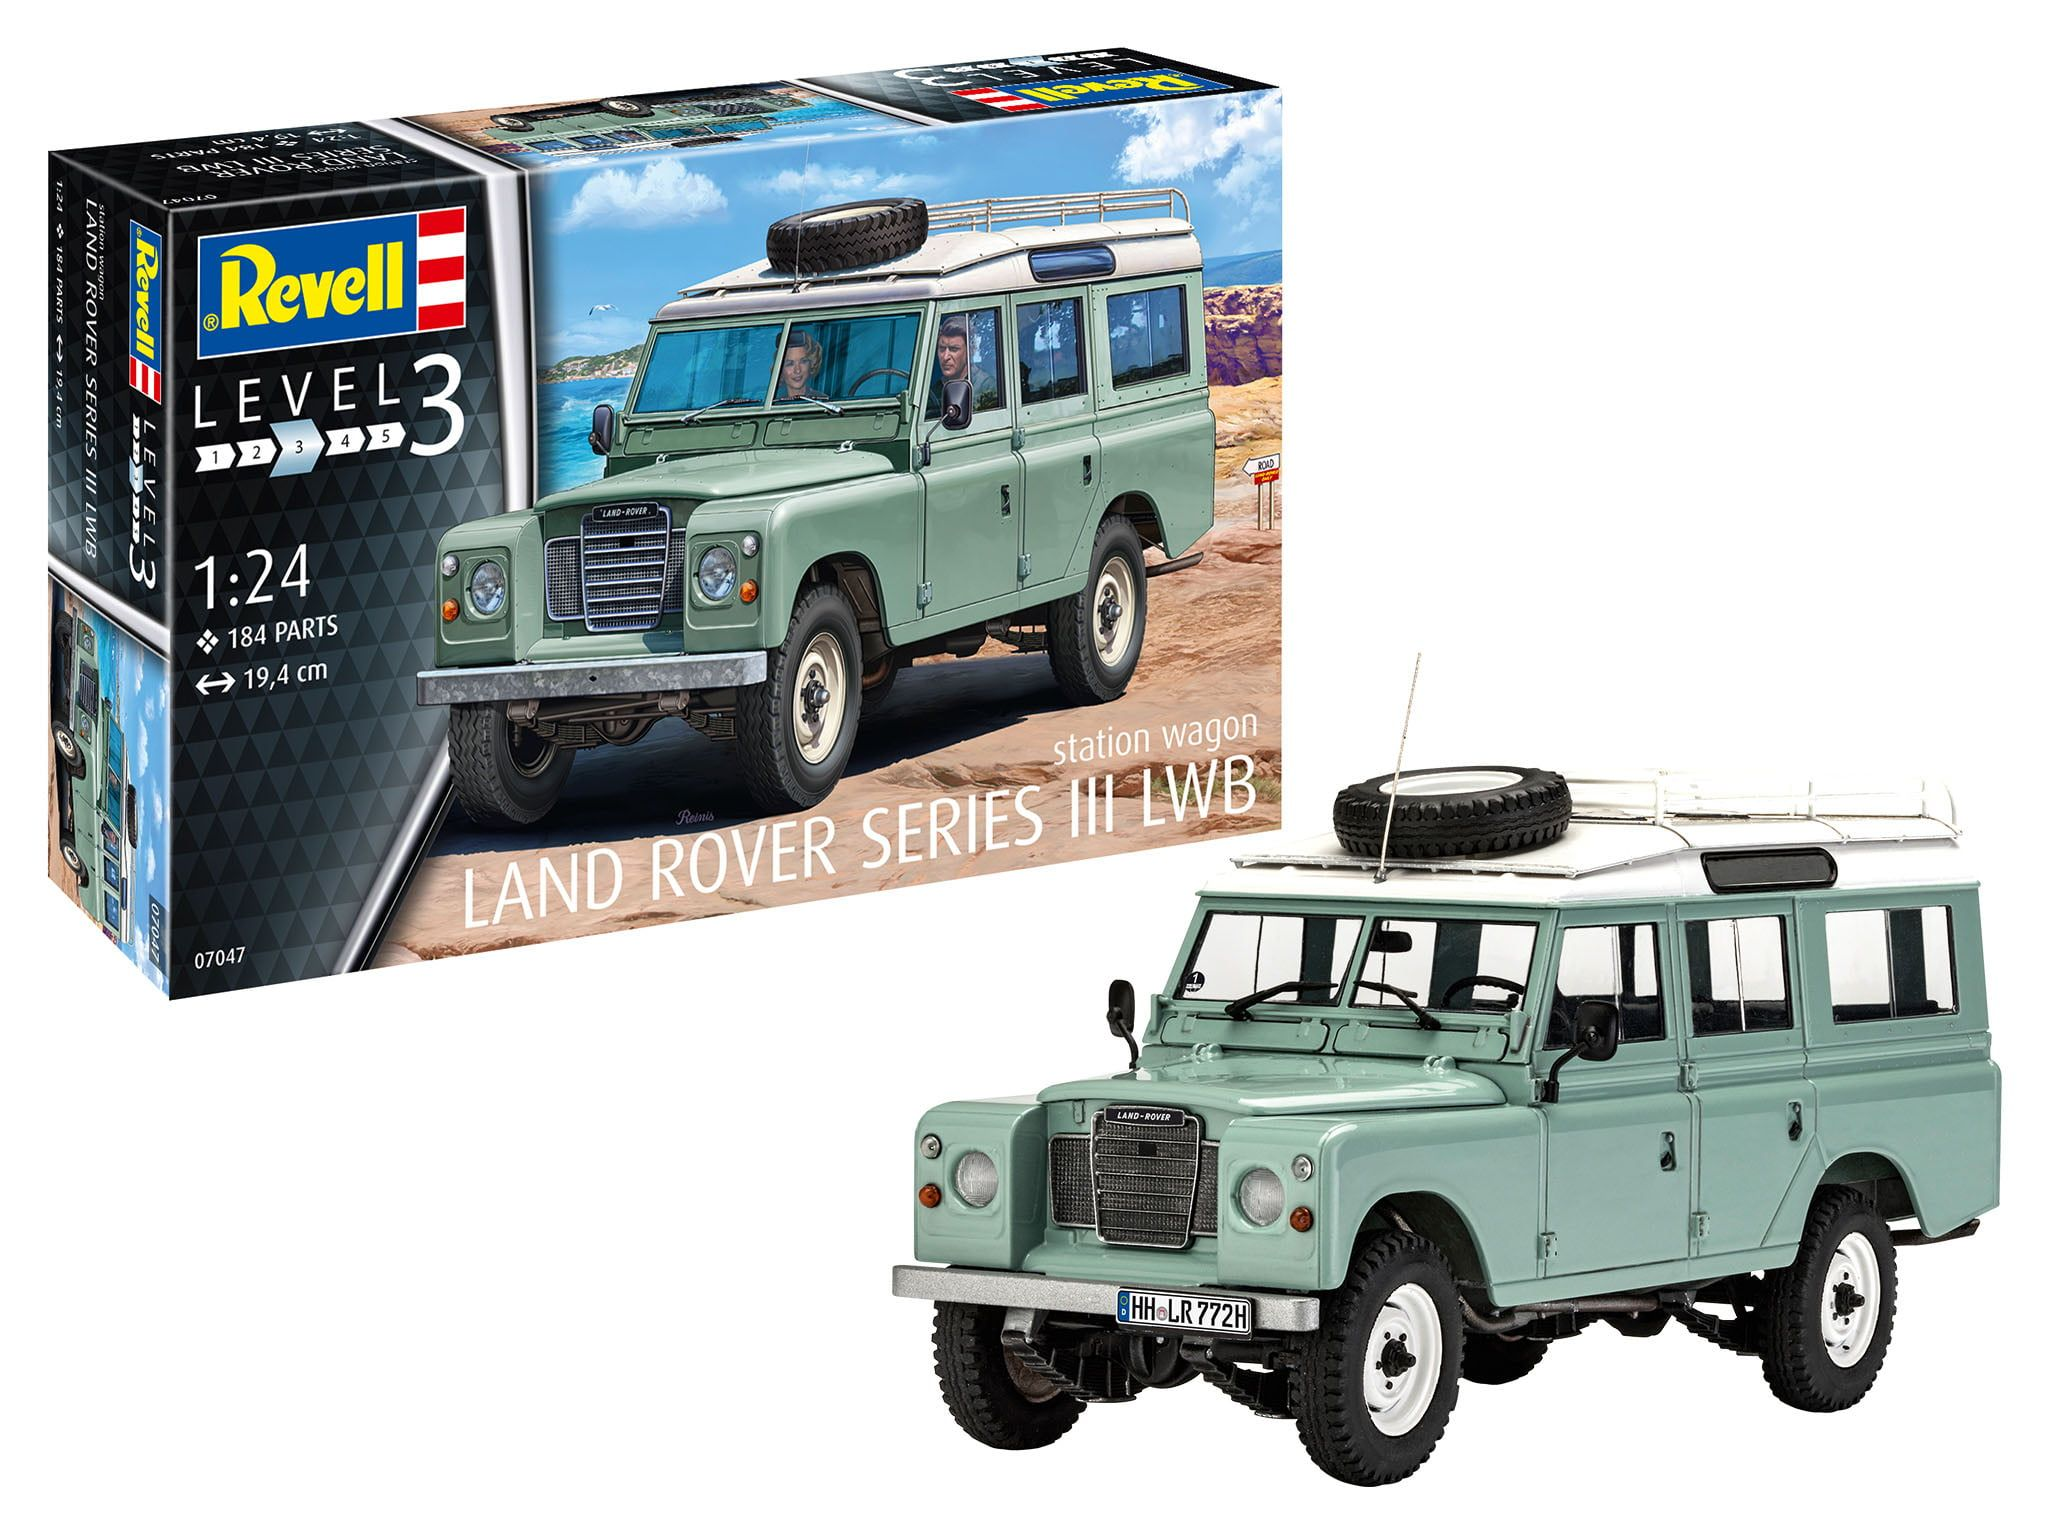 Revell 1:24 Scale Land Rover Series III